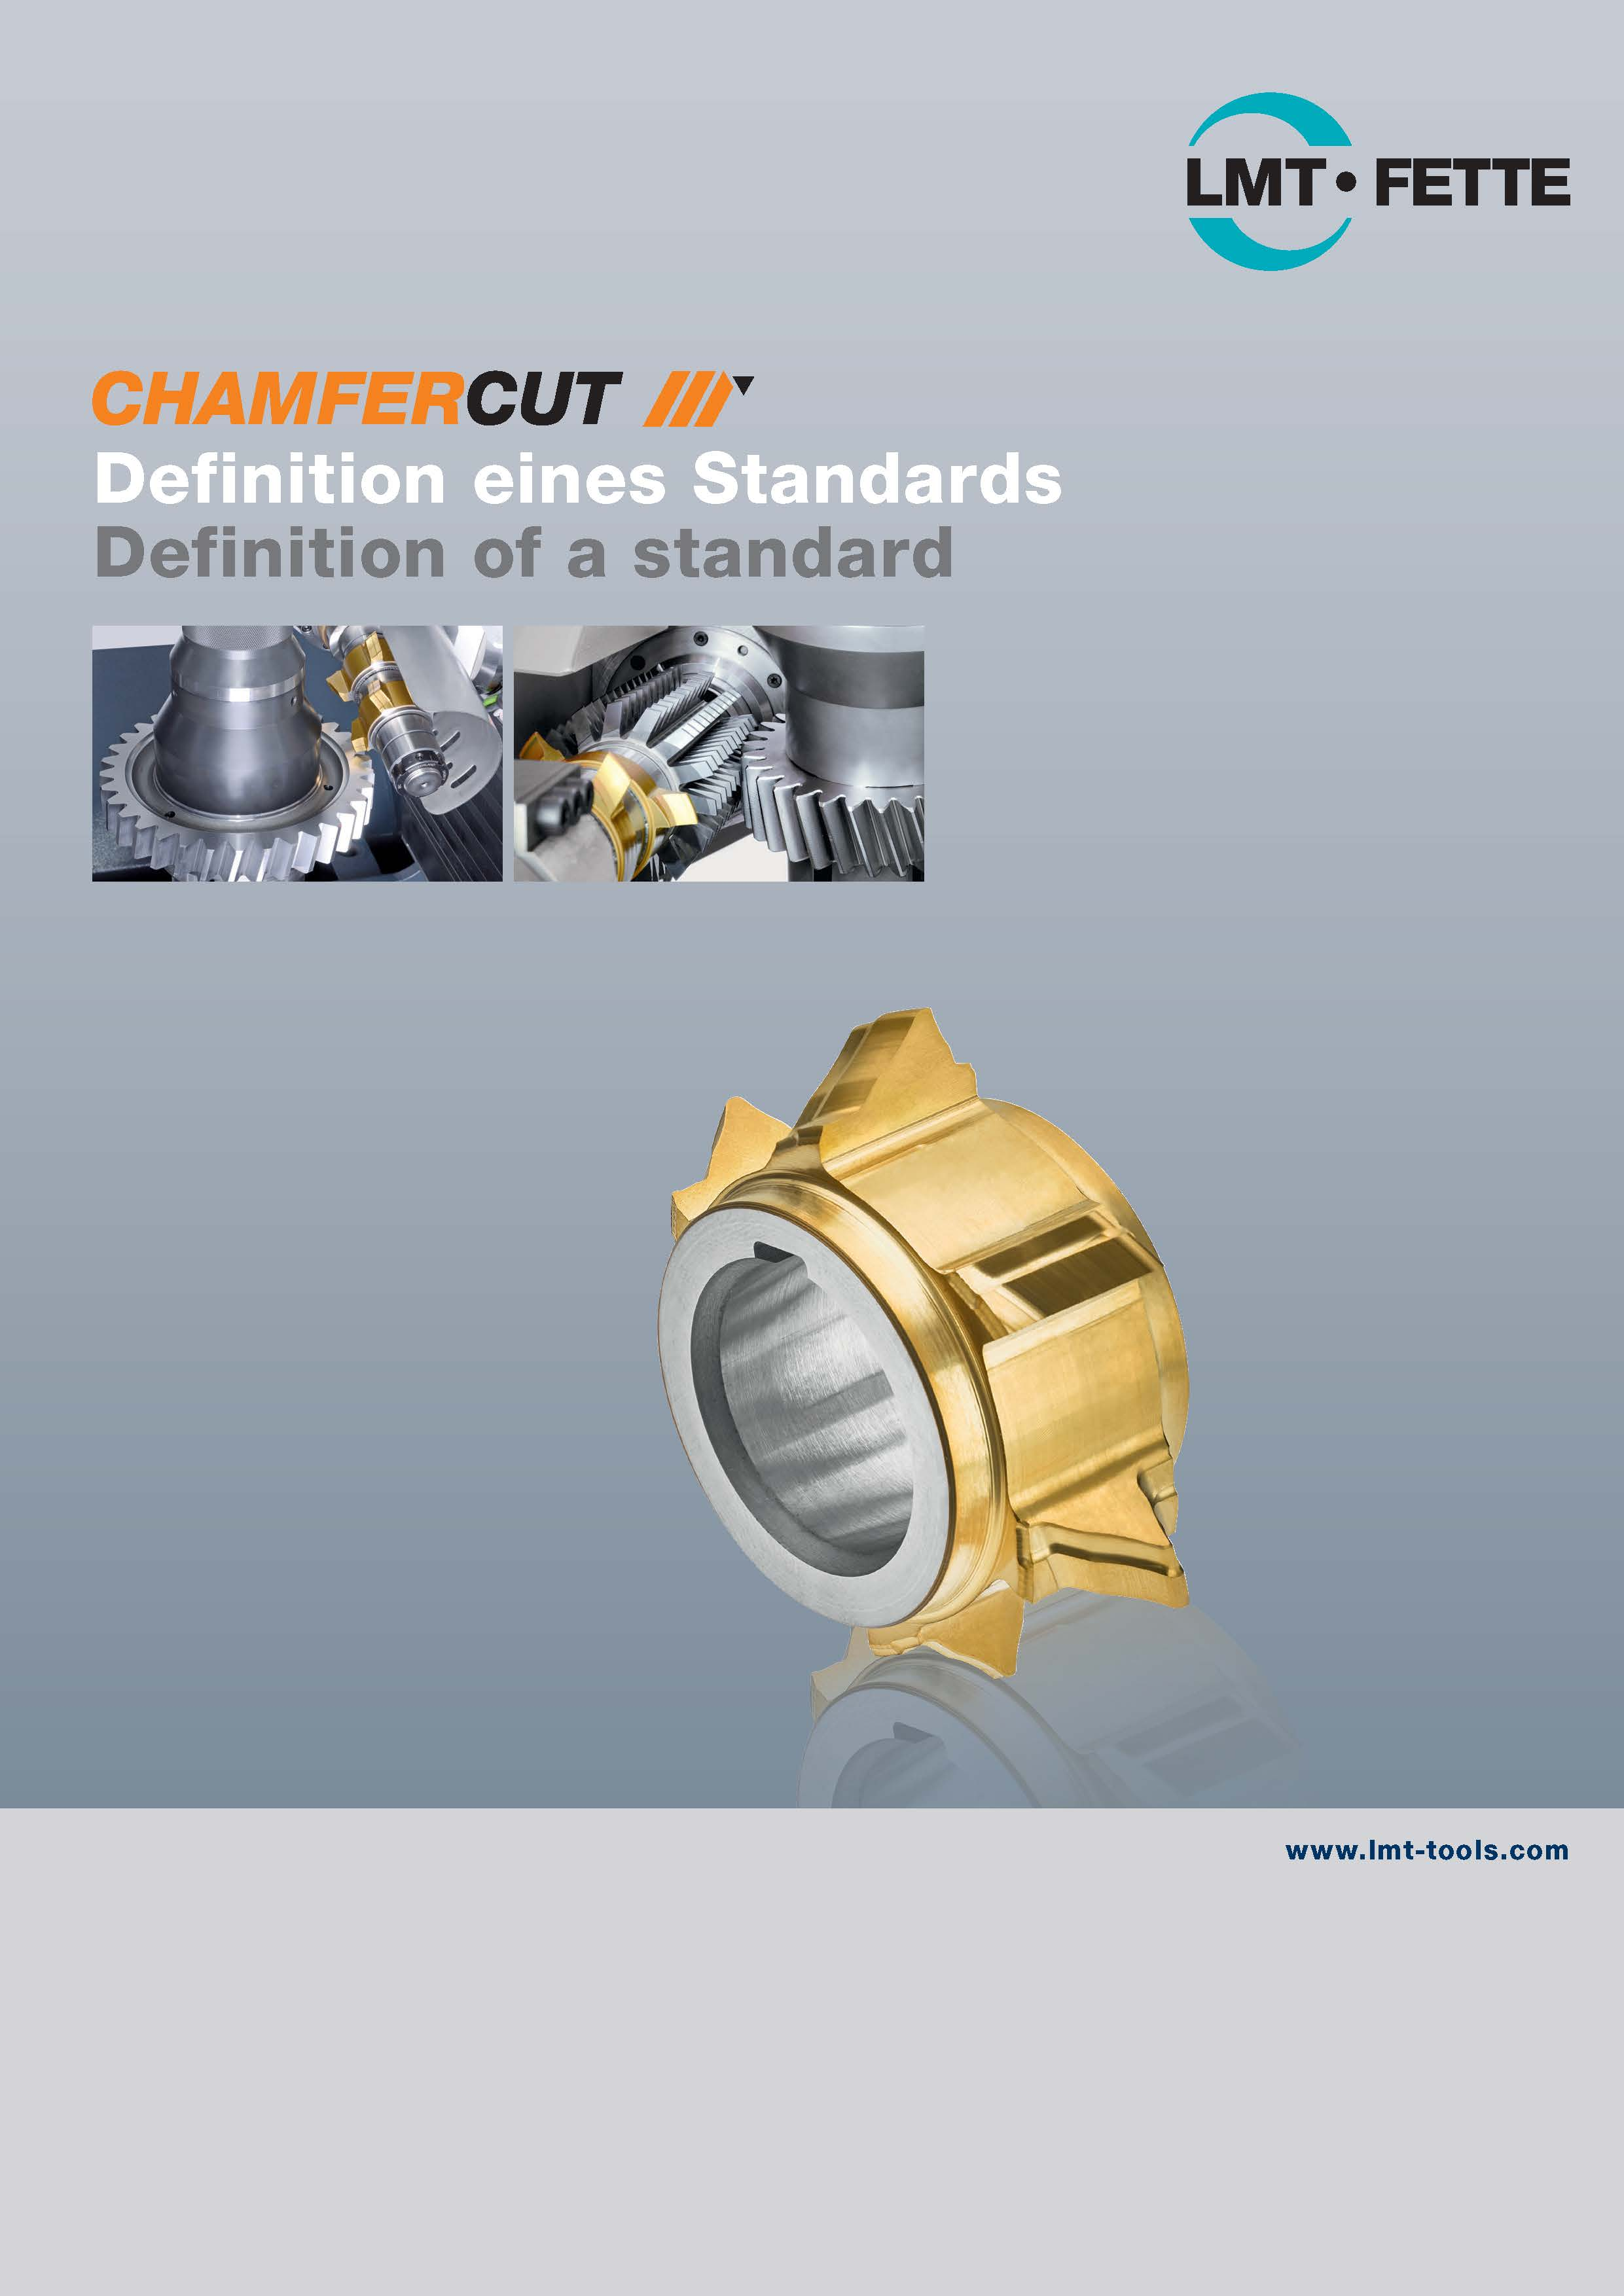 ChamferCut: Definition eines Standards